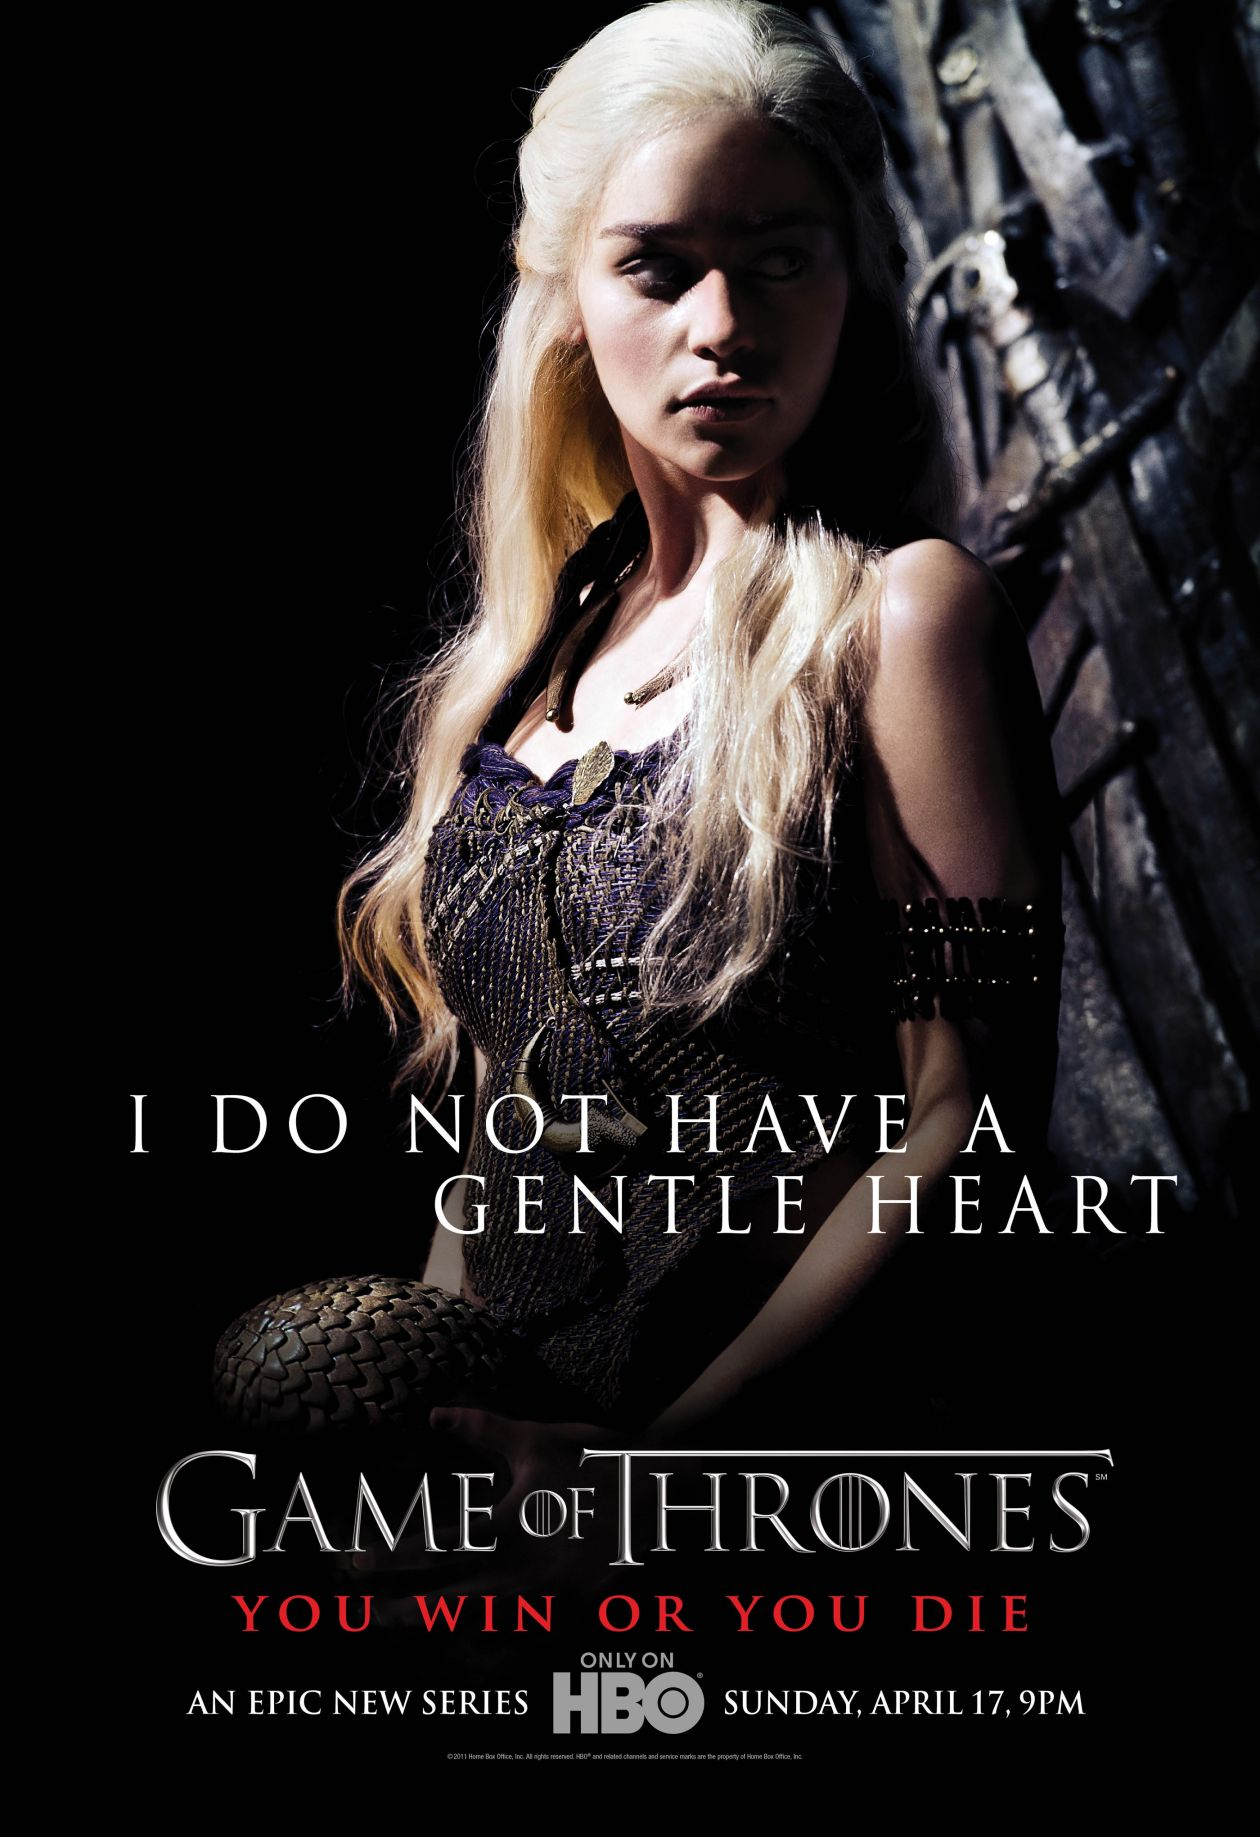 Emilia Clarke actress | Queen Daenerys Targaryen / Game of Thrones / Movie Series Season 1 Poster Affiche série Saison 1 2011